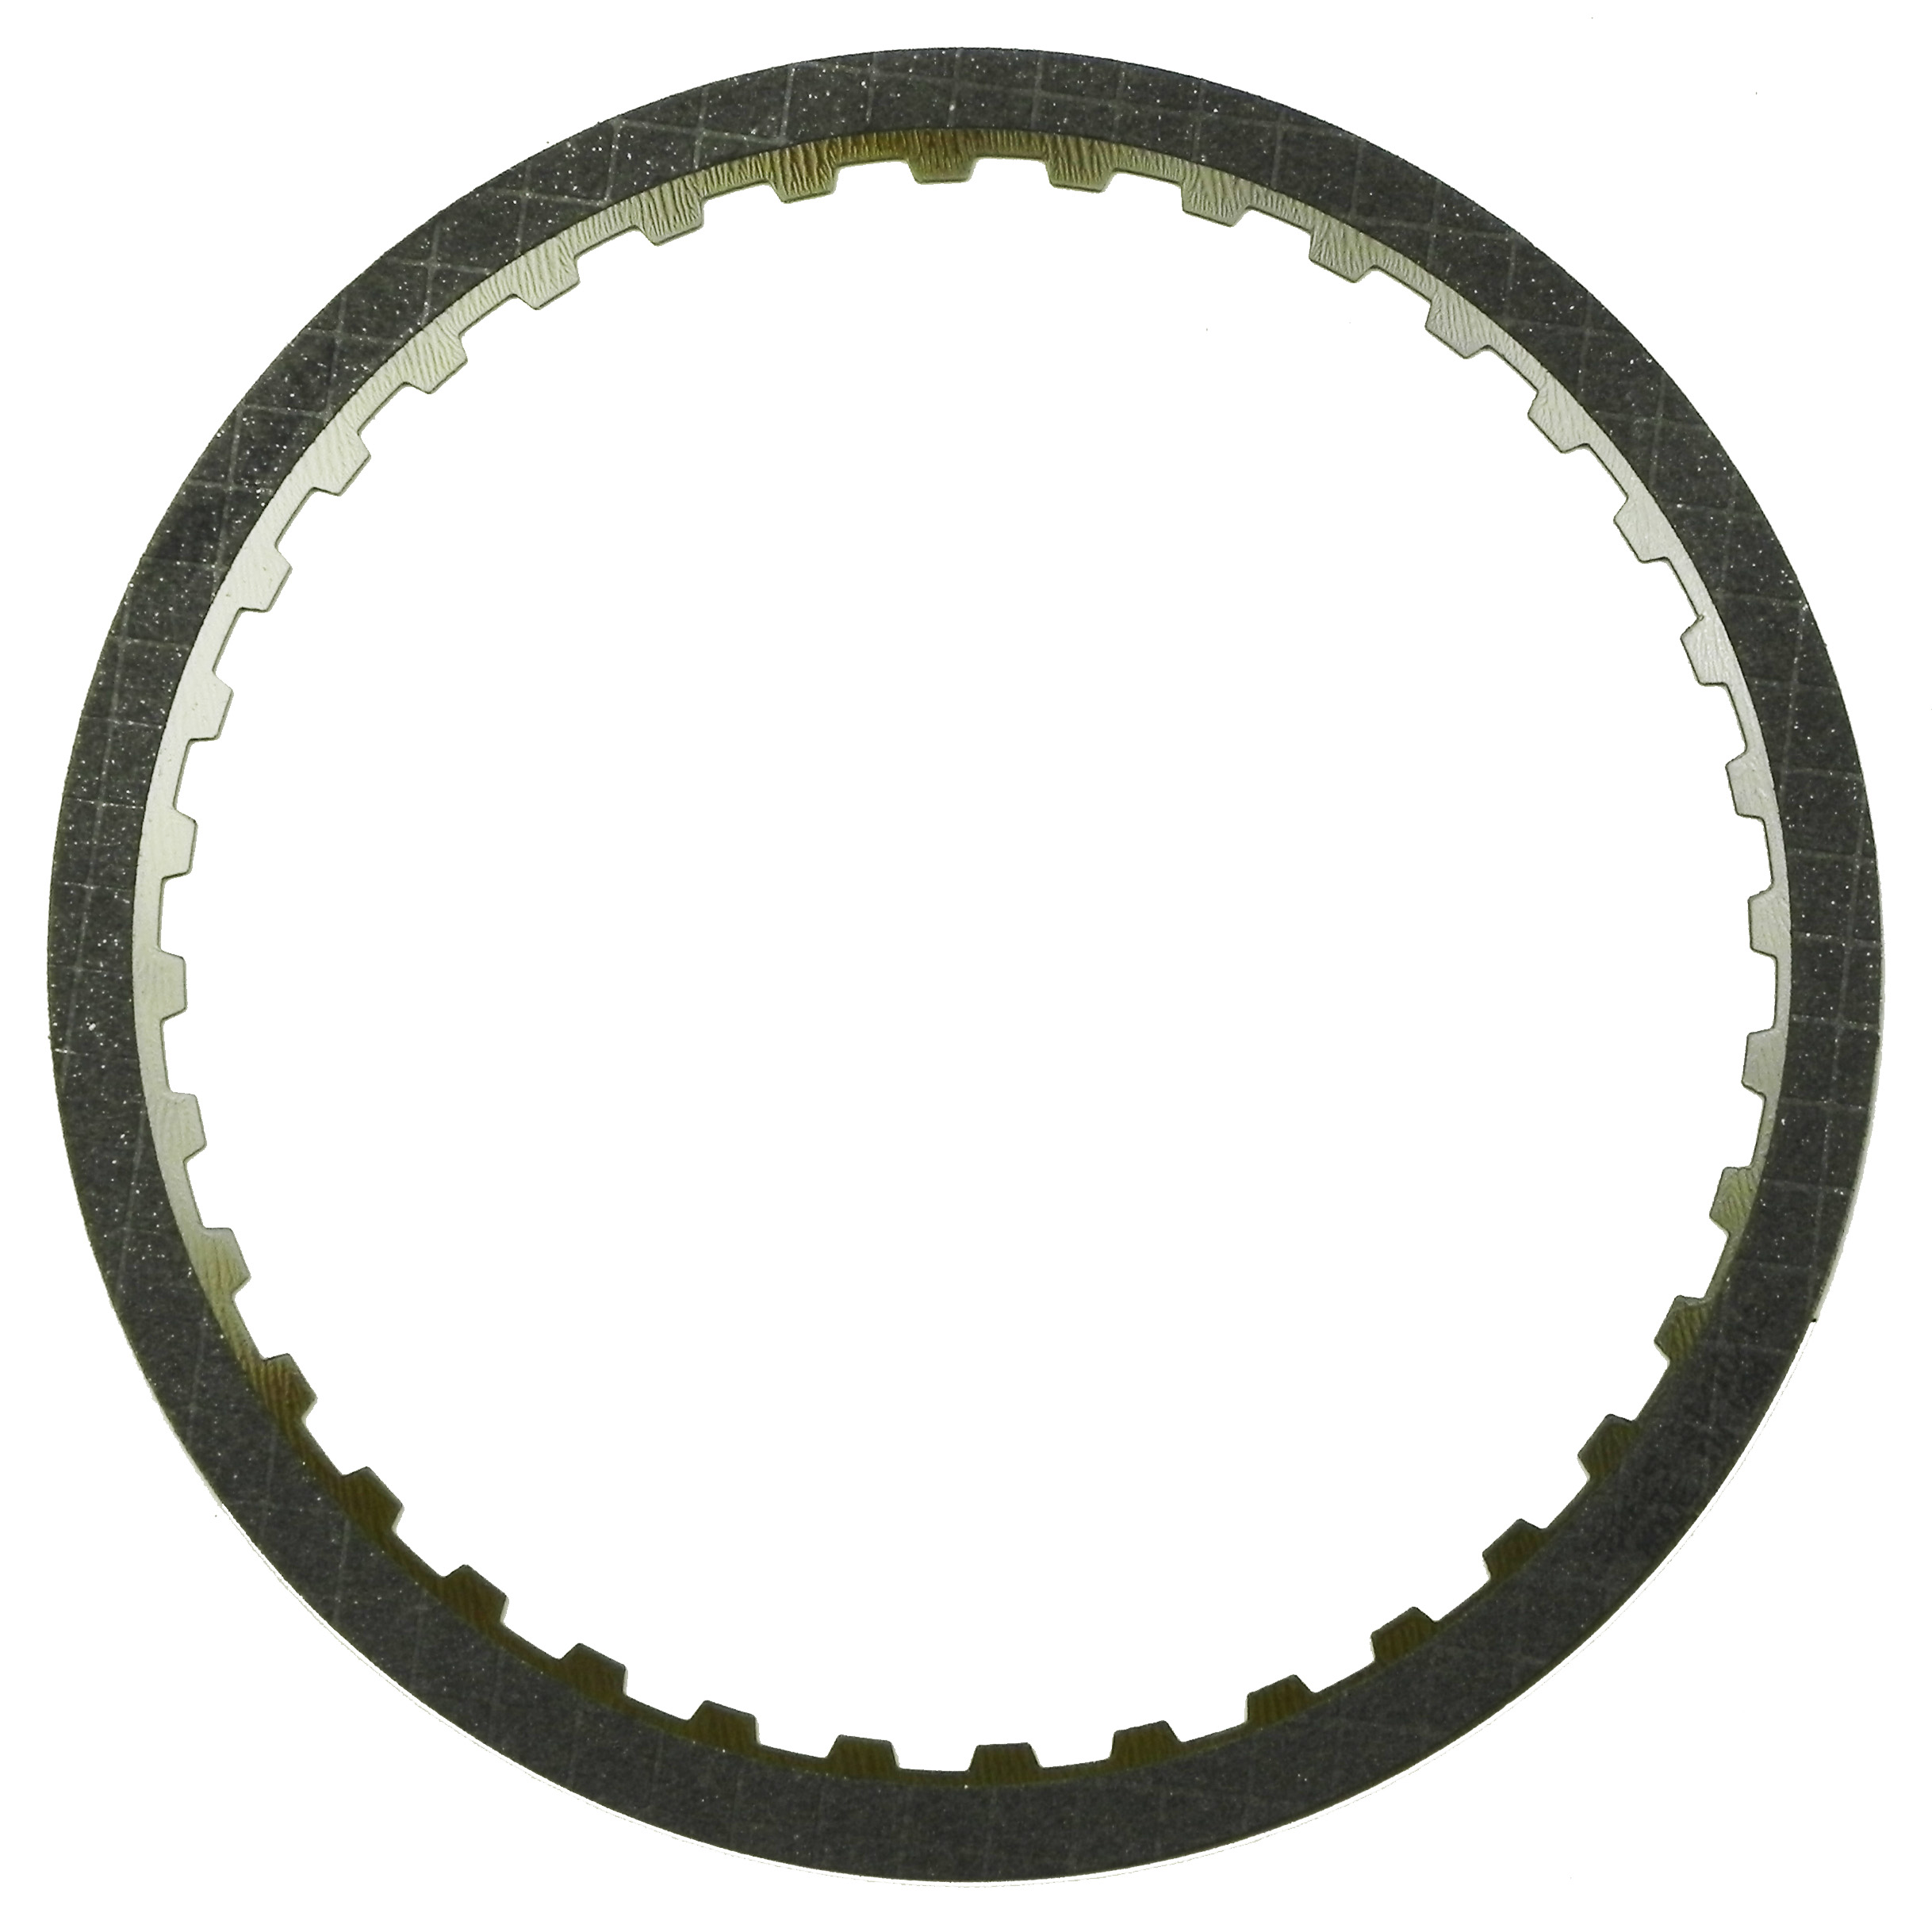 R560625 | 2009-ON Friction Clutch Plate High Energy 2, 6 Brake High Energy